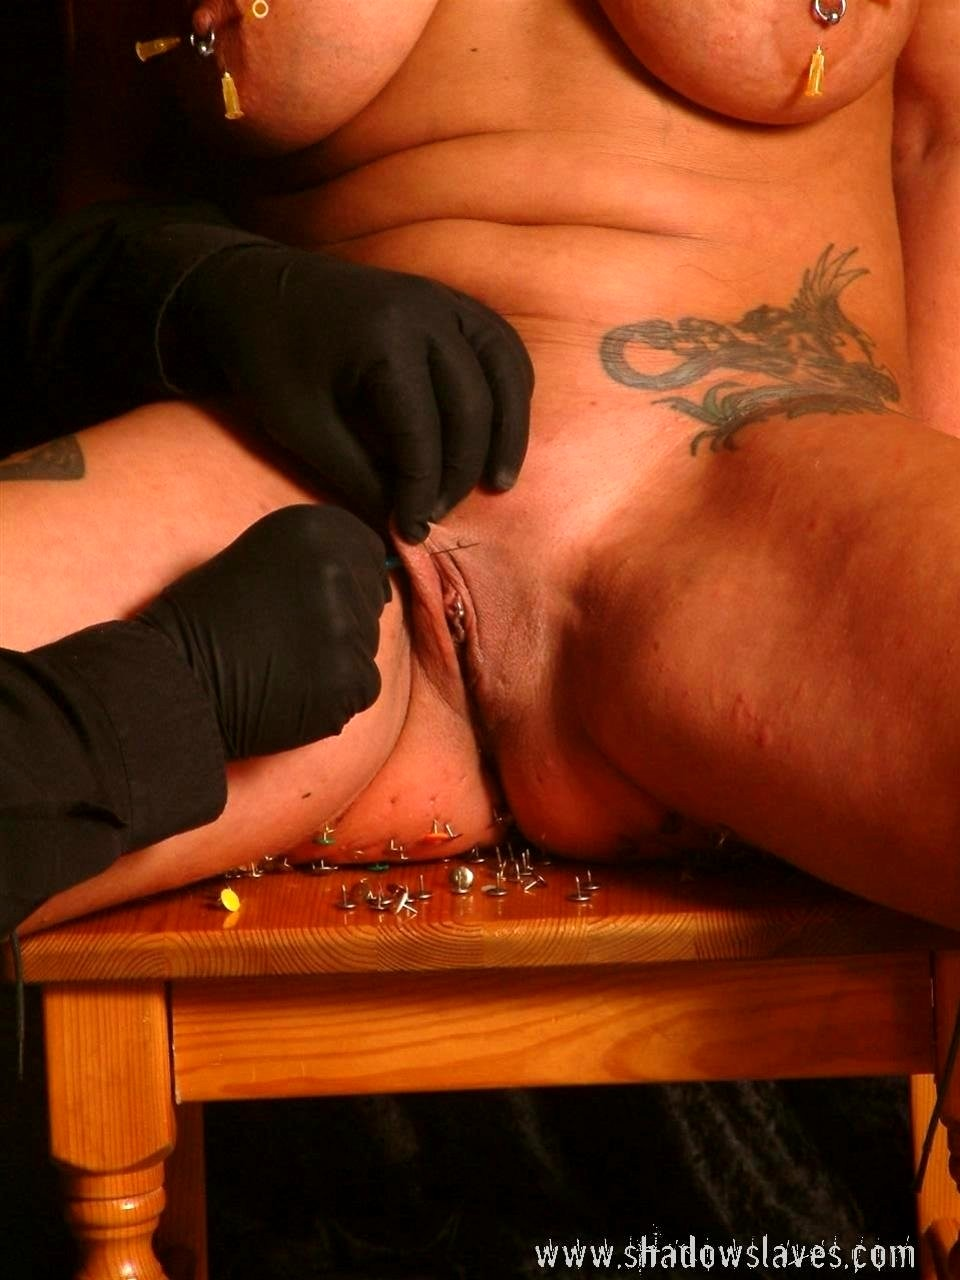 Adult gallery free extreme bdsm piercing pics